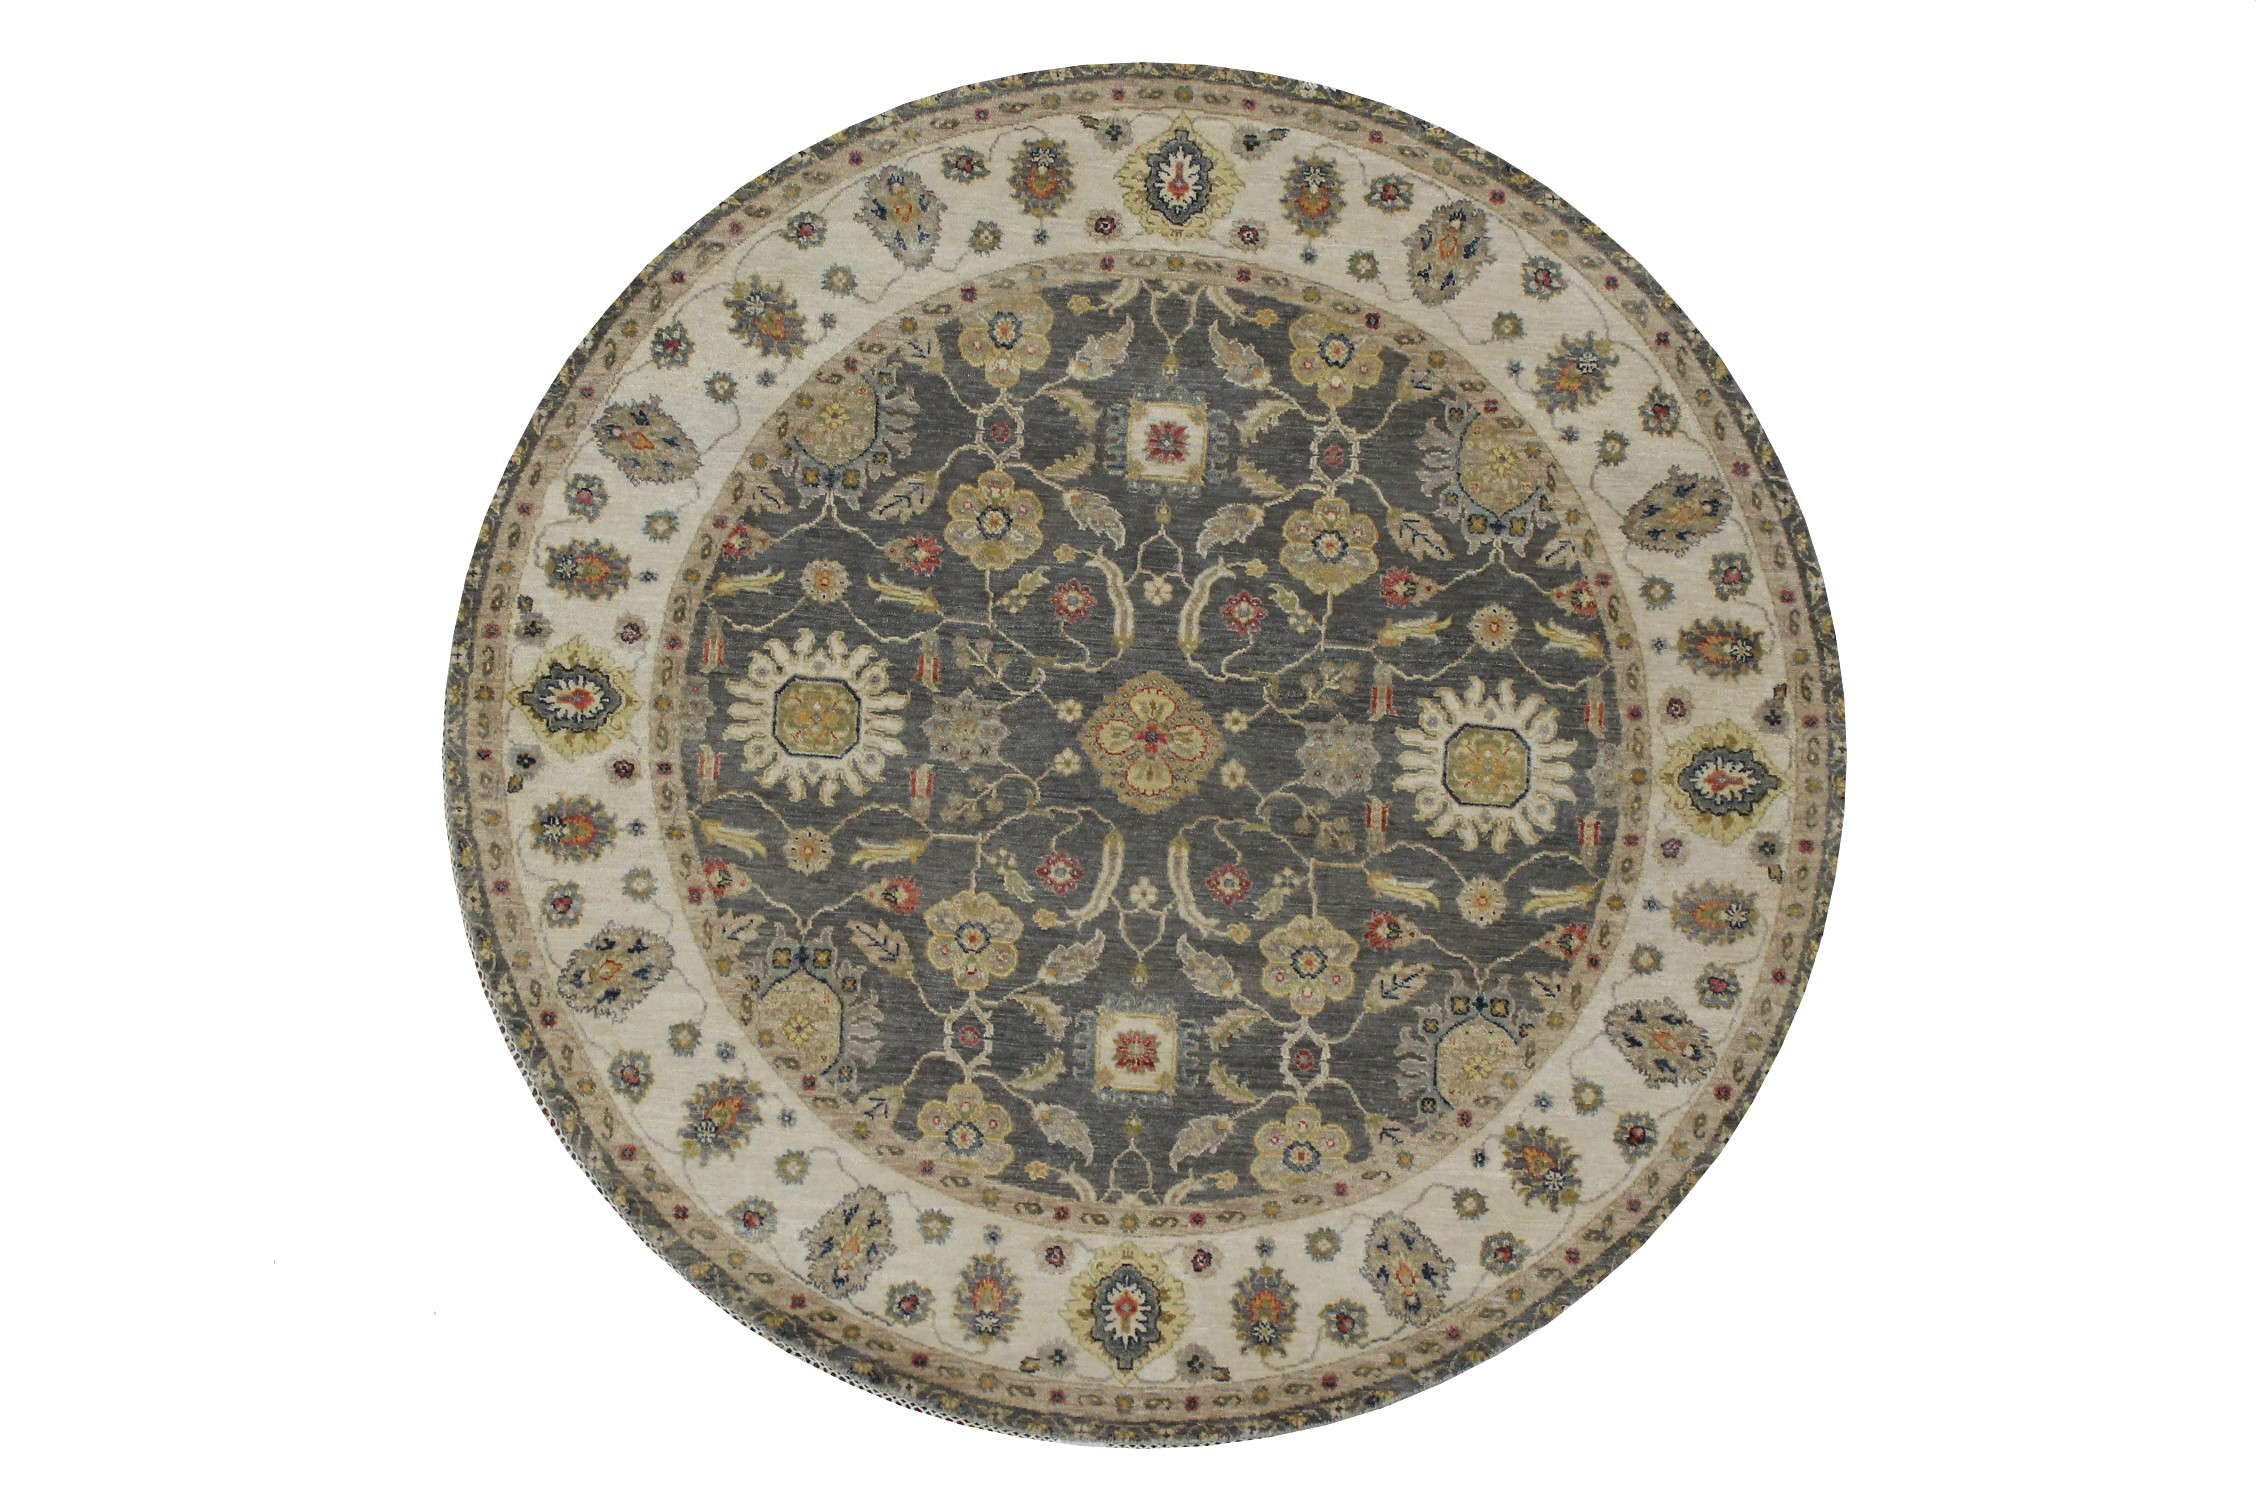 6 ft. - 7 ft. Round & Square Traditional Hand Knotted  Area Rug - MR022874